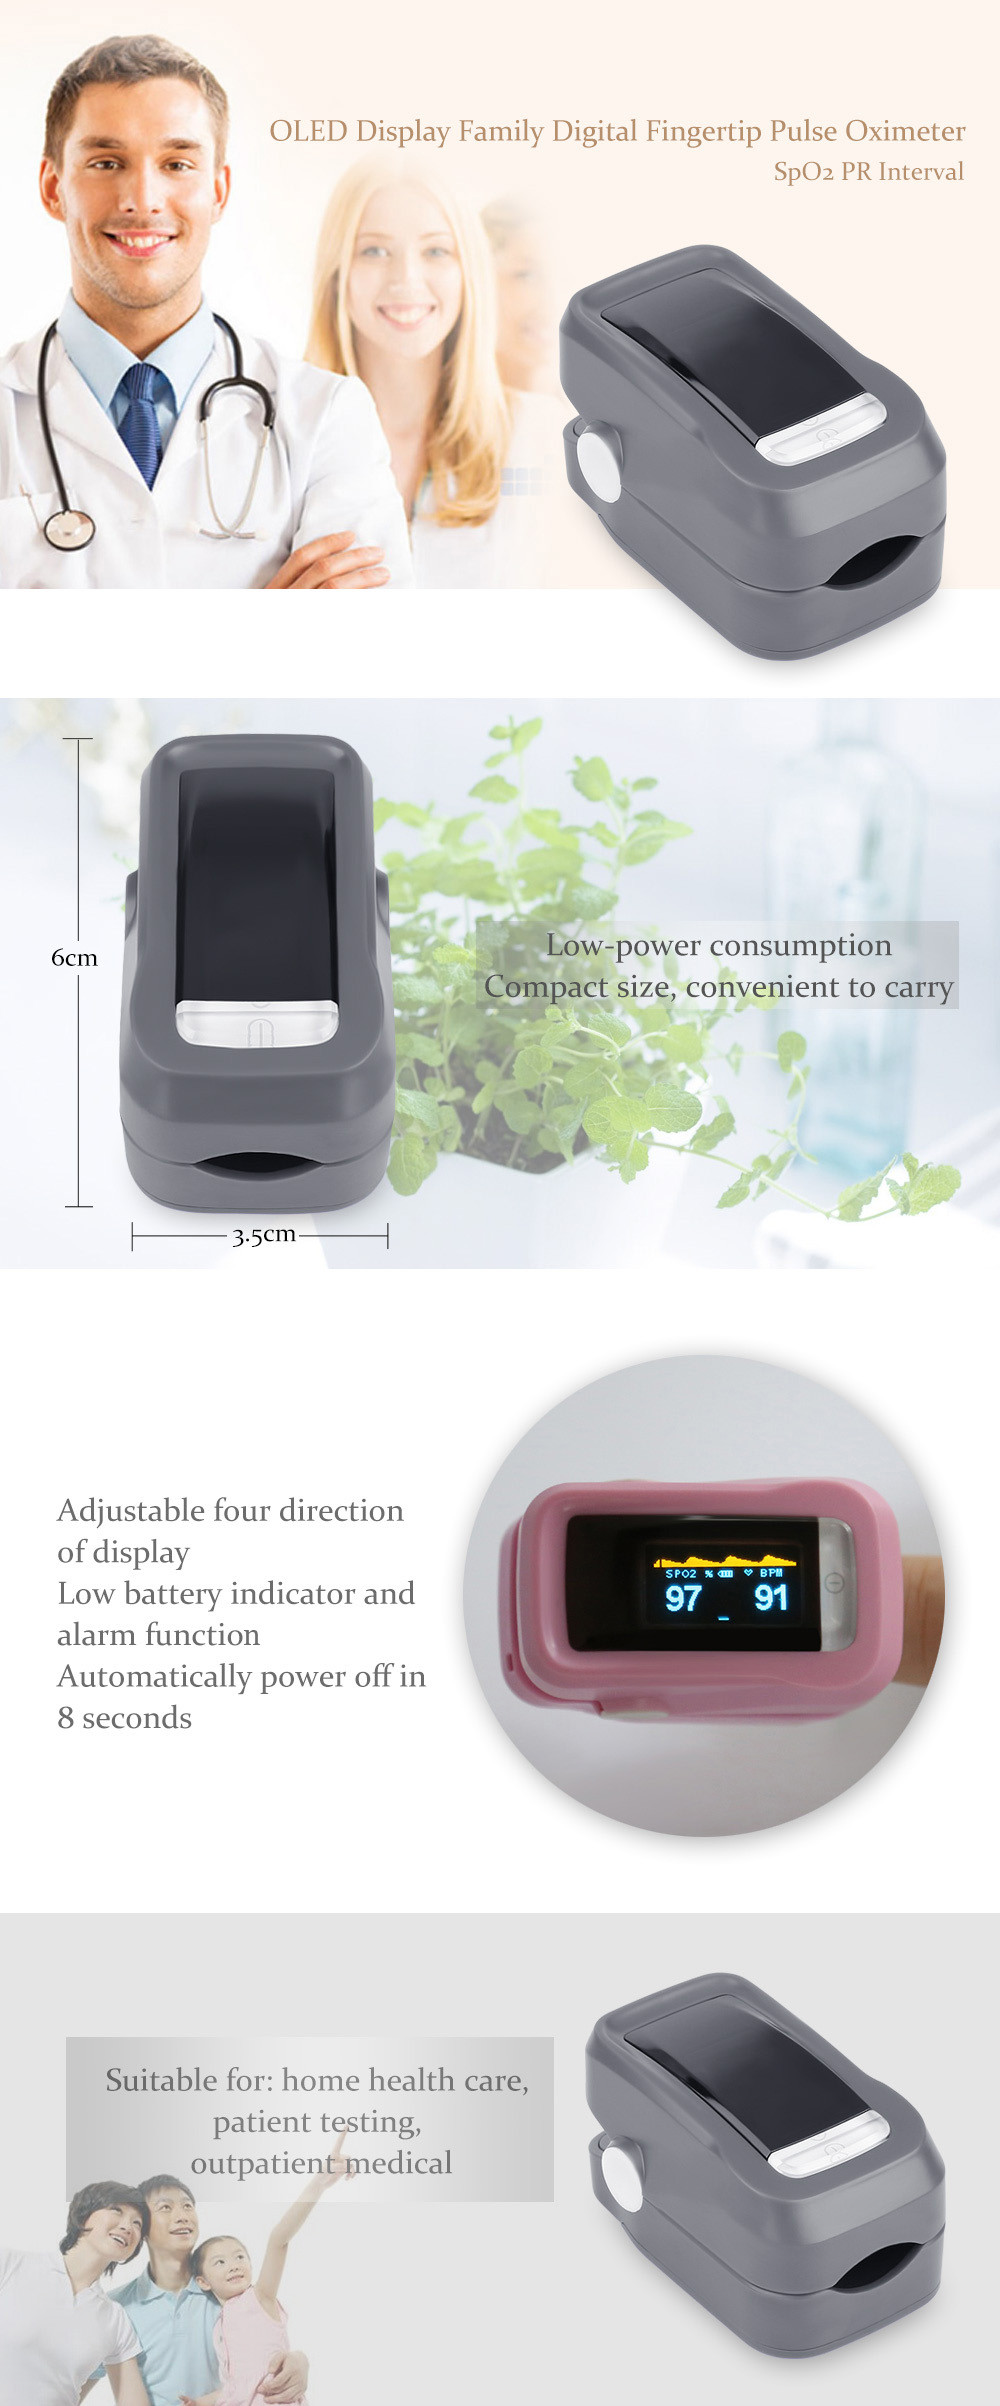 OLED Display Digital Fingertip Pulse Oximeter SpO2 PR Interval